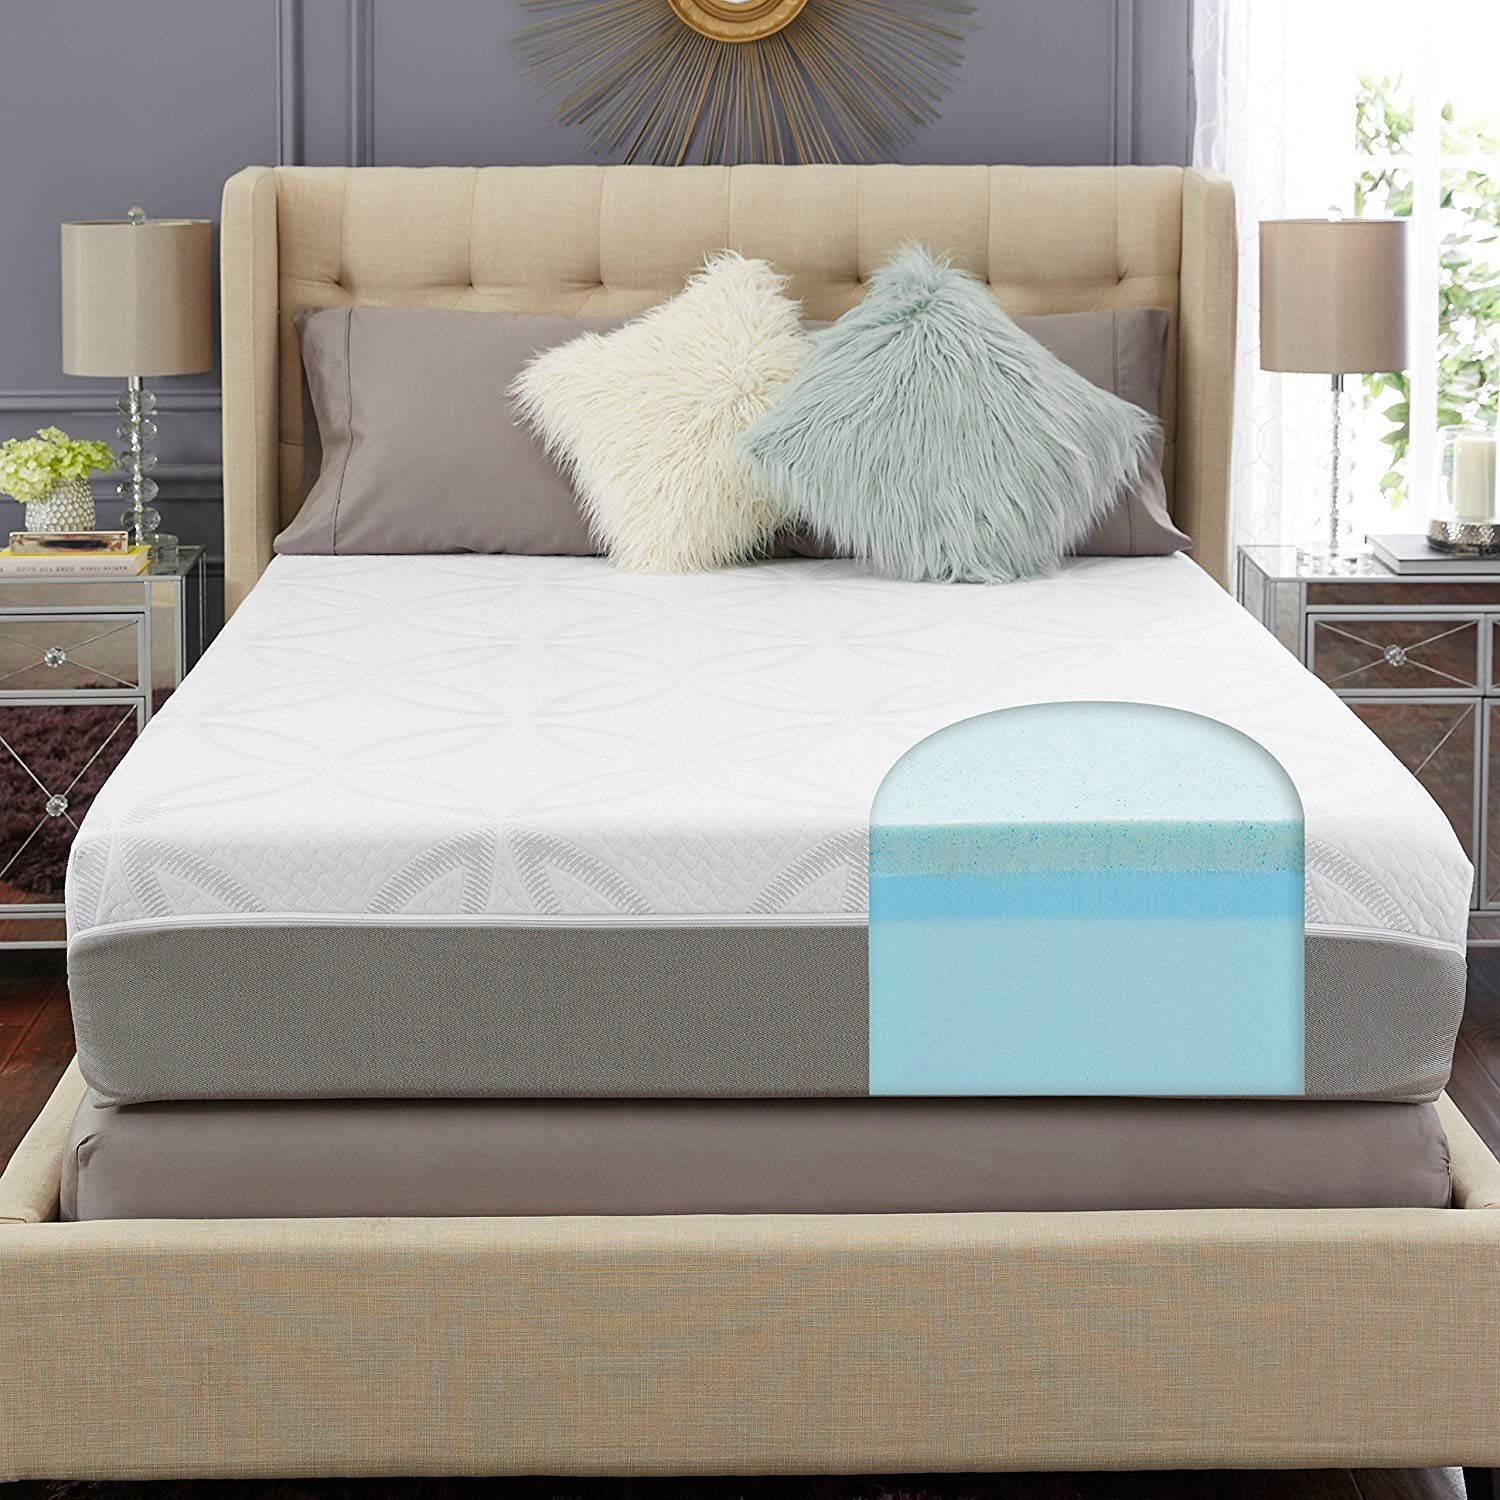 30 Breathtaking Mattress Firm Queen Bed Frame Ideas Amazon Trupedic 12 Inch Queen Gel Memory Foam Mattres Queen Bed Frame Adjustable Bed Frame Foam Mattress